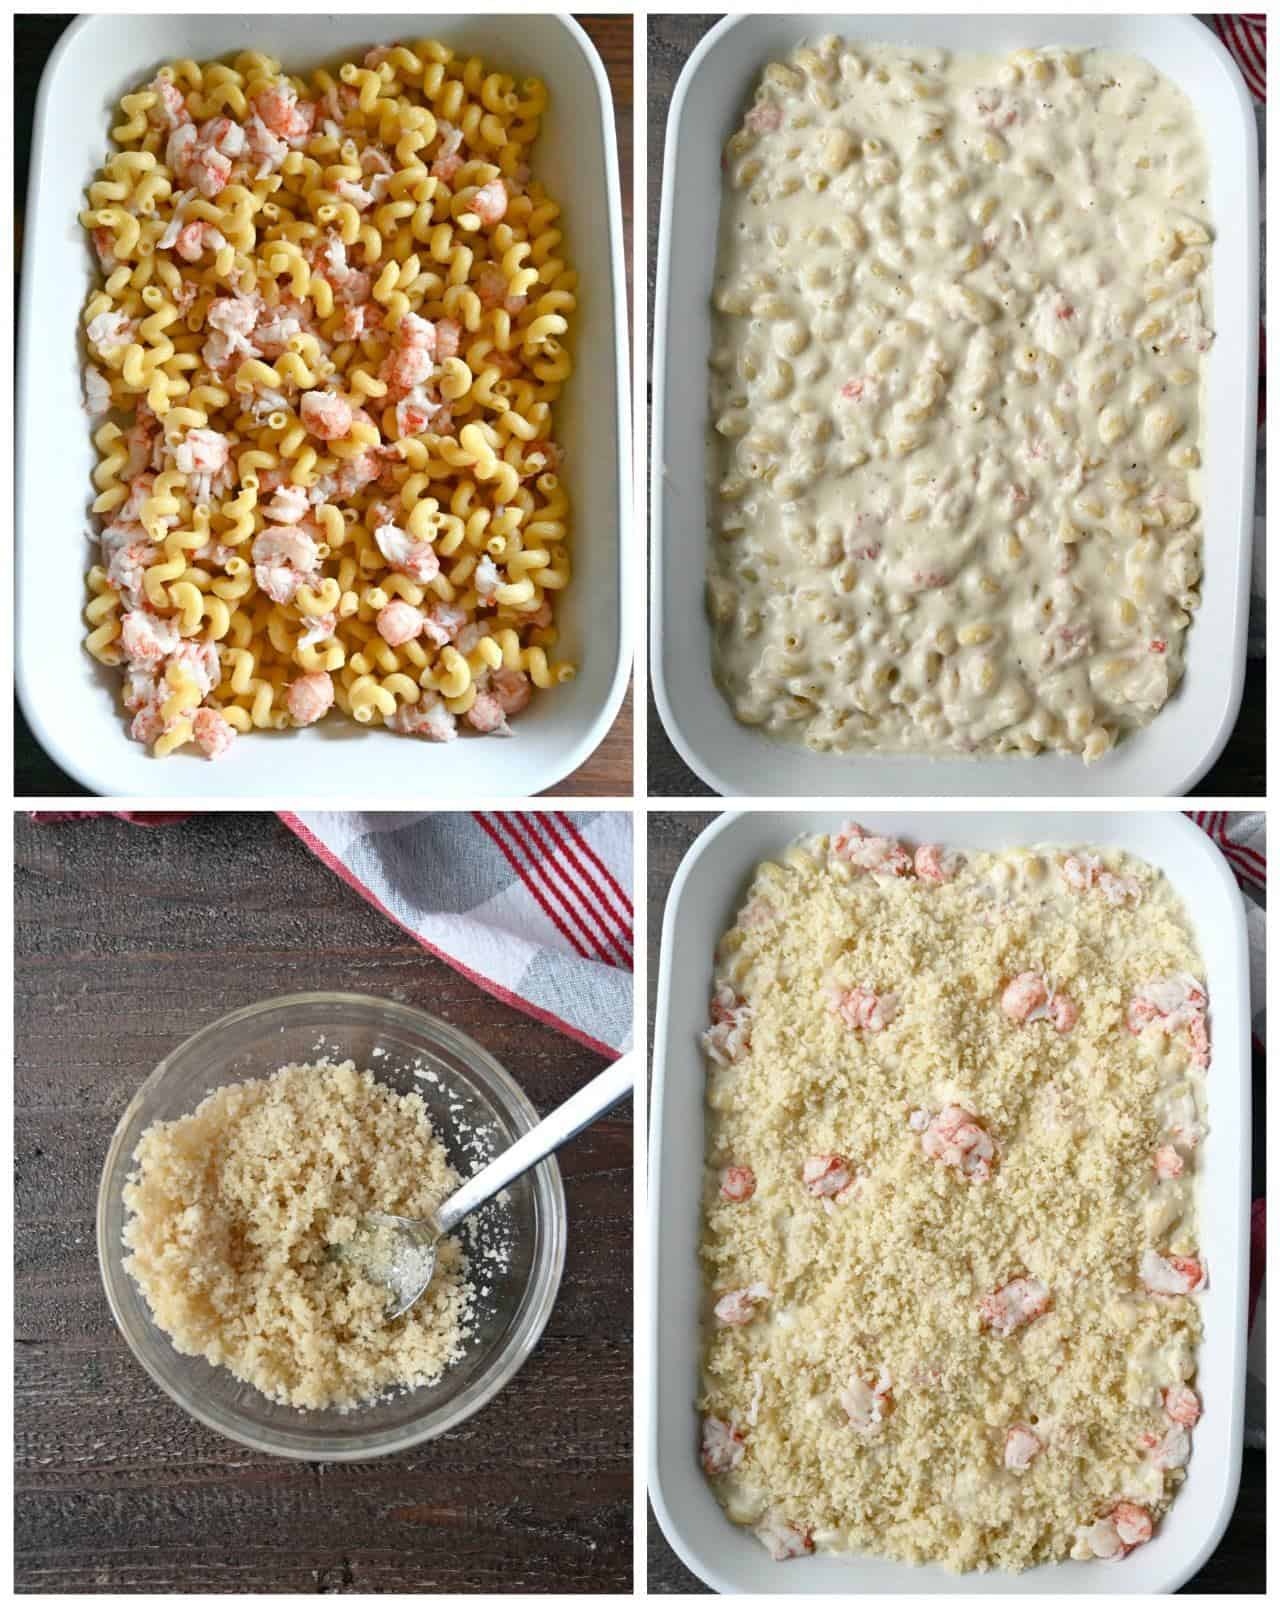 cooked pasts and lobster meat placed in a white baking dish. Second one, cheese sauce added on top. Third one, bread crumb mixture mixed together in a small bowl. Fourth one, bread crumb mixture sprinkled on top.